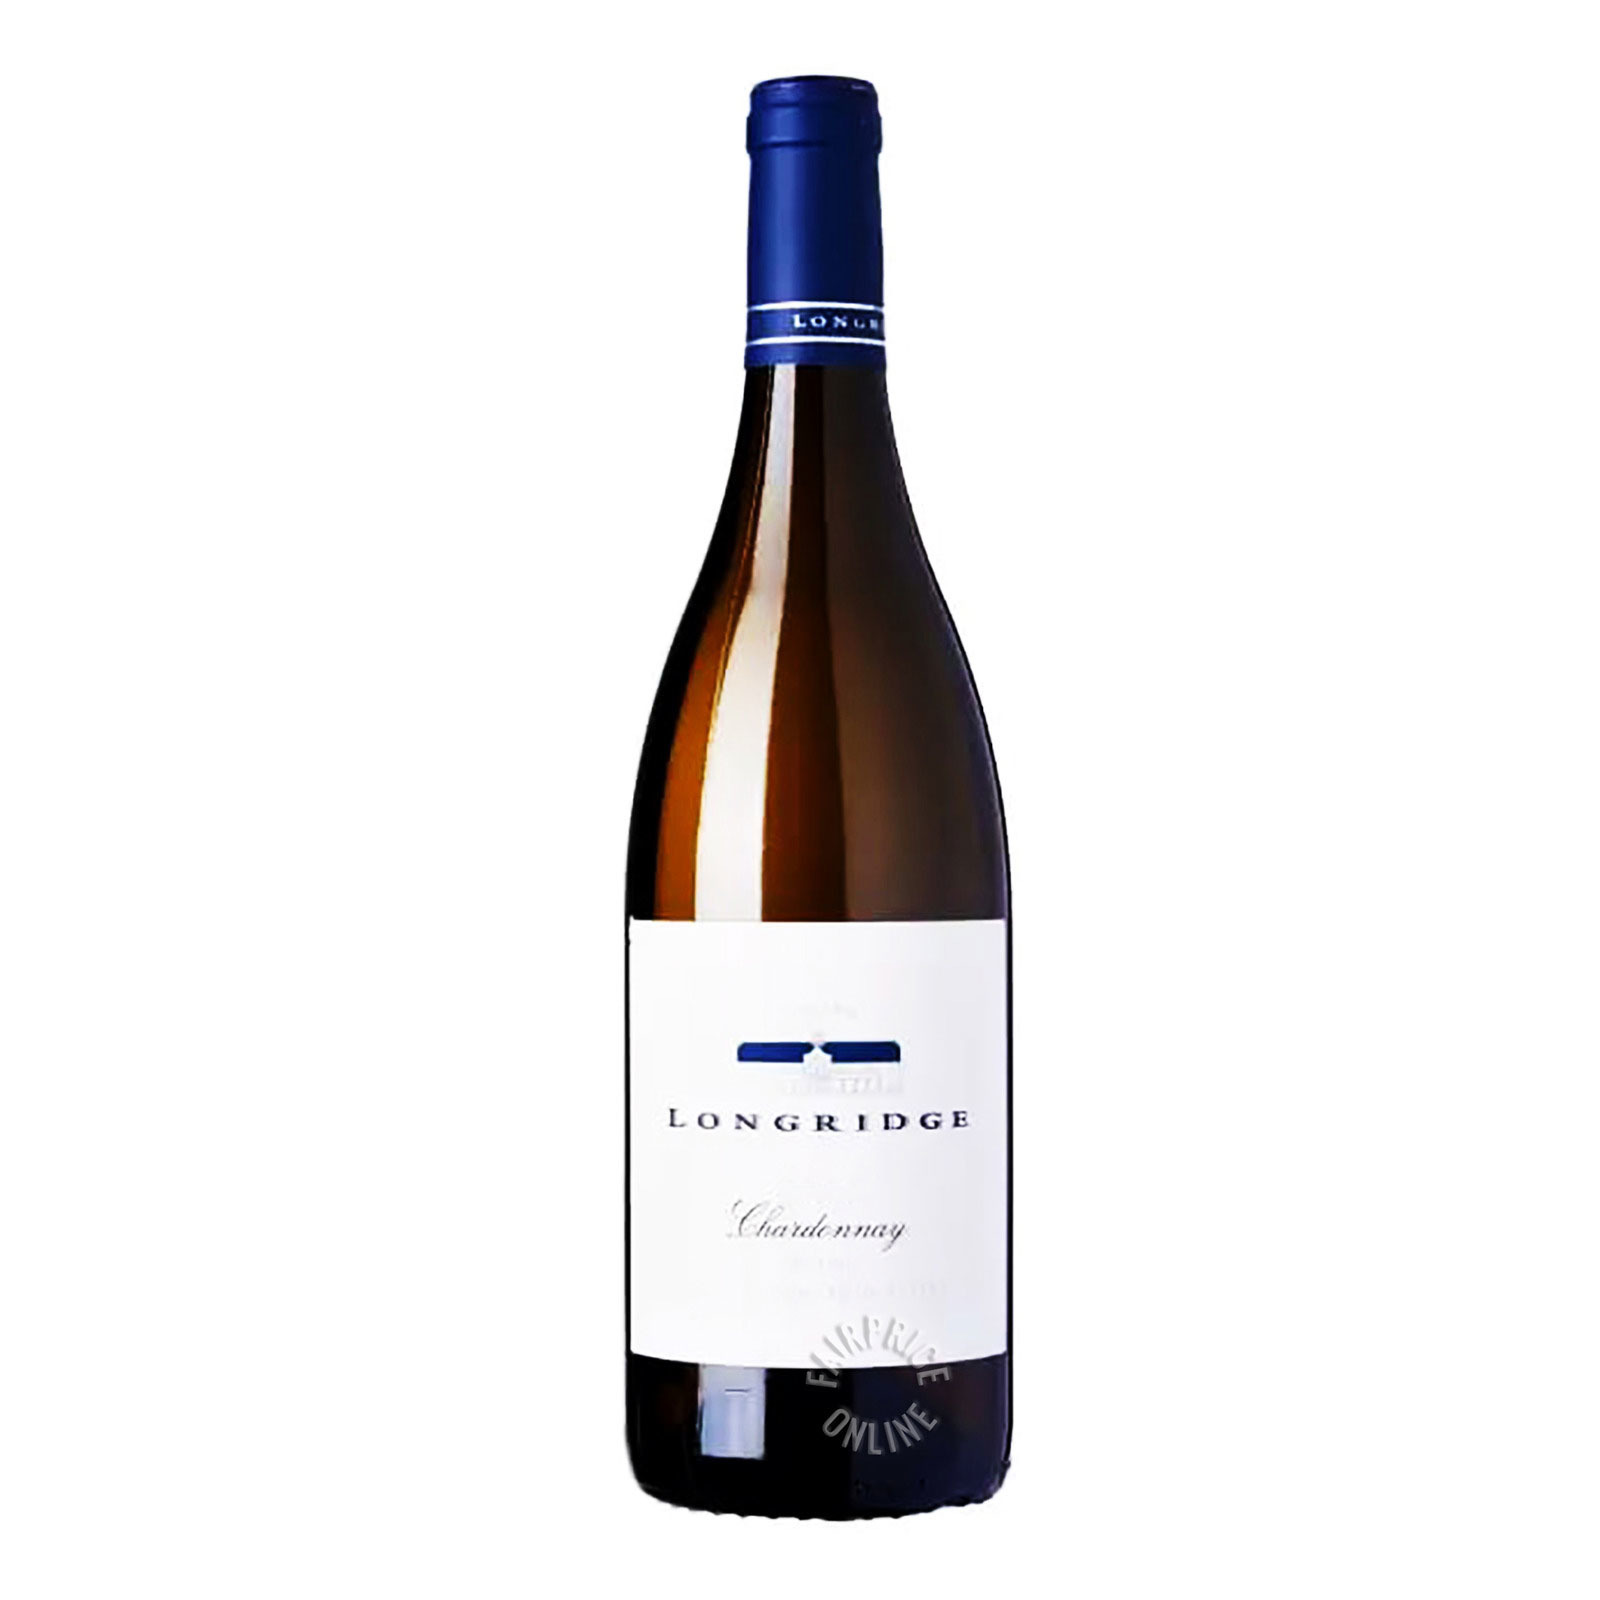 Longridge White Wine - Chardonnay